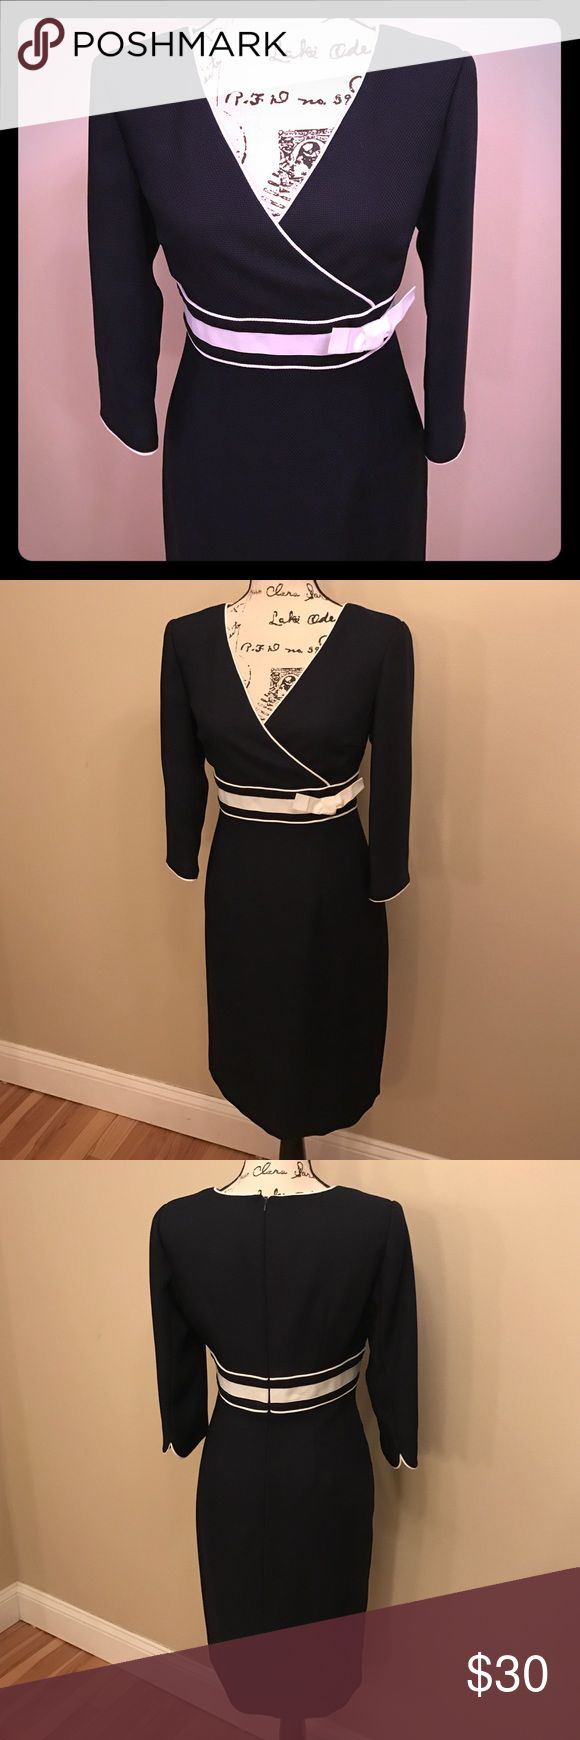 Navy 3/4 sleeve dress Navy 3/4 sleeve dress. White pipeing and band around the middle. V neck. Zipper up back. No stains or snags. Donna Morgan Dresses